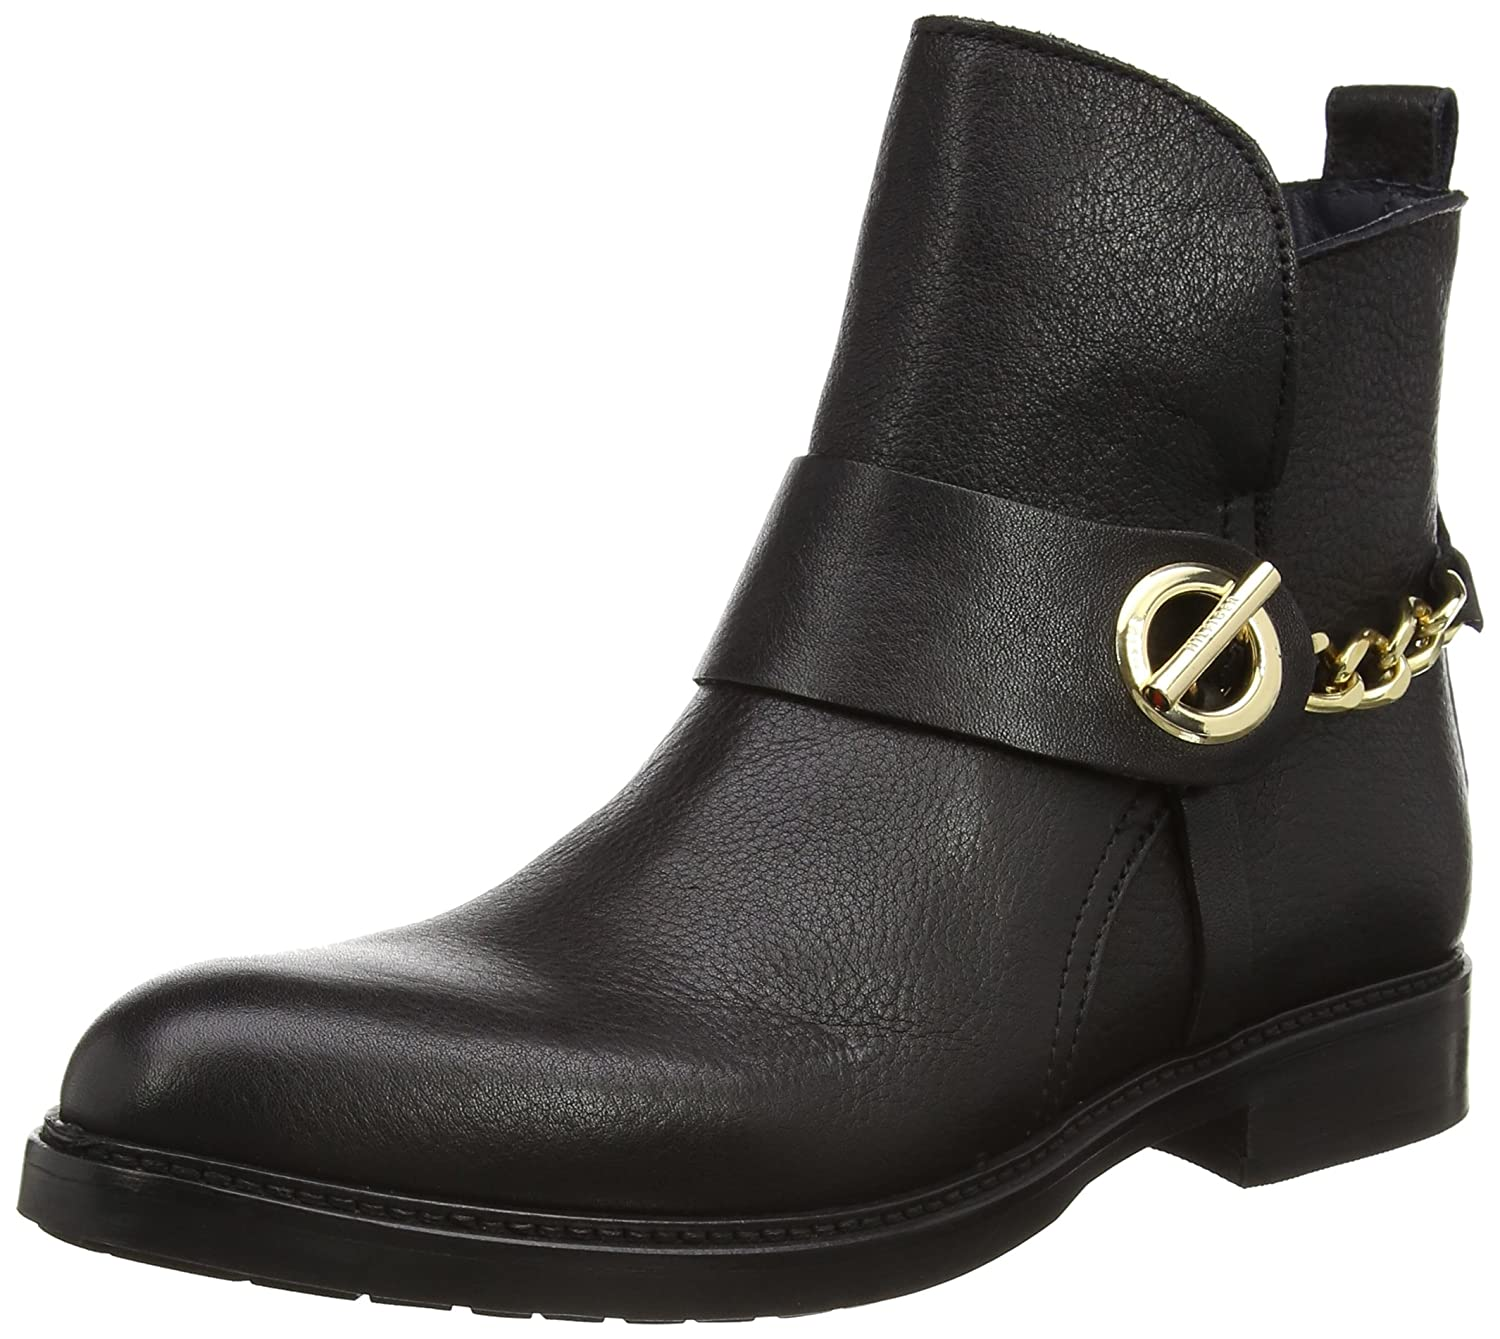 98f30c2e7b3 Tommy Hilfiger Women's Holly 1A Ankle Boots, (Black 990), 3.5 UK ...